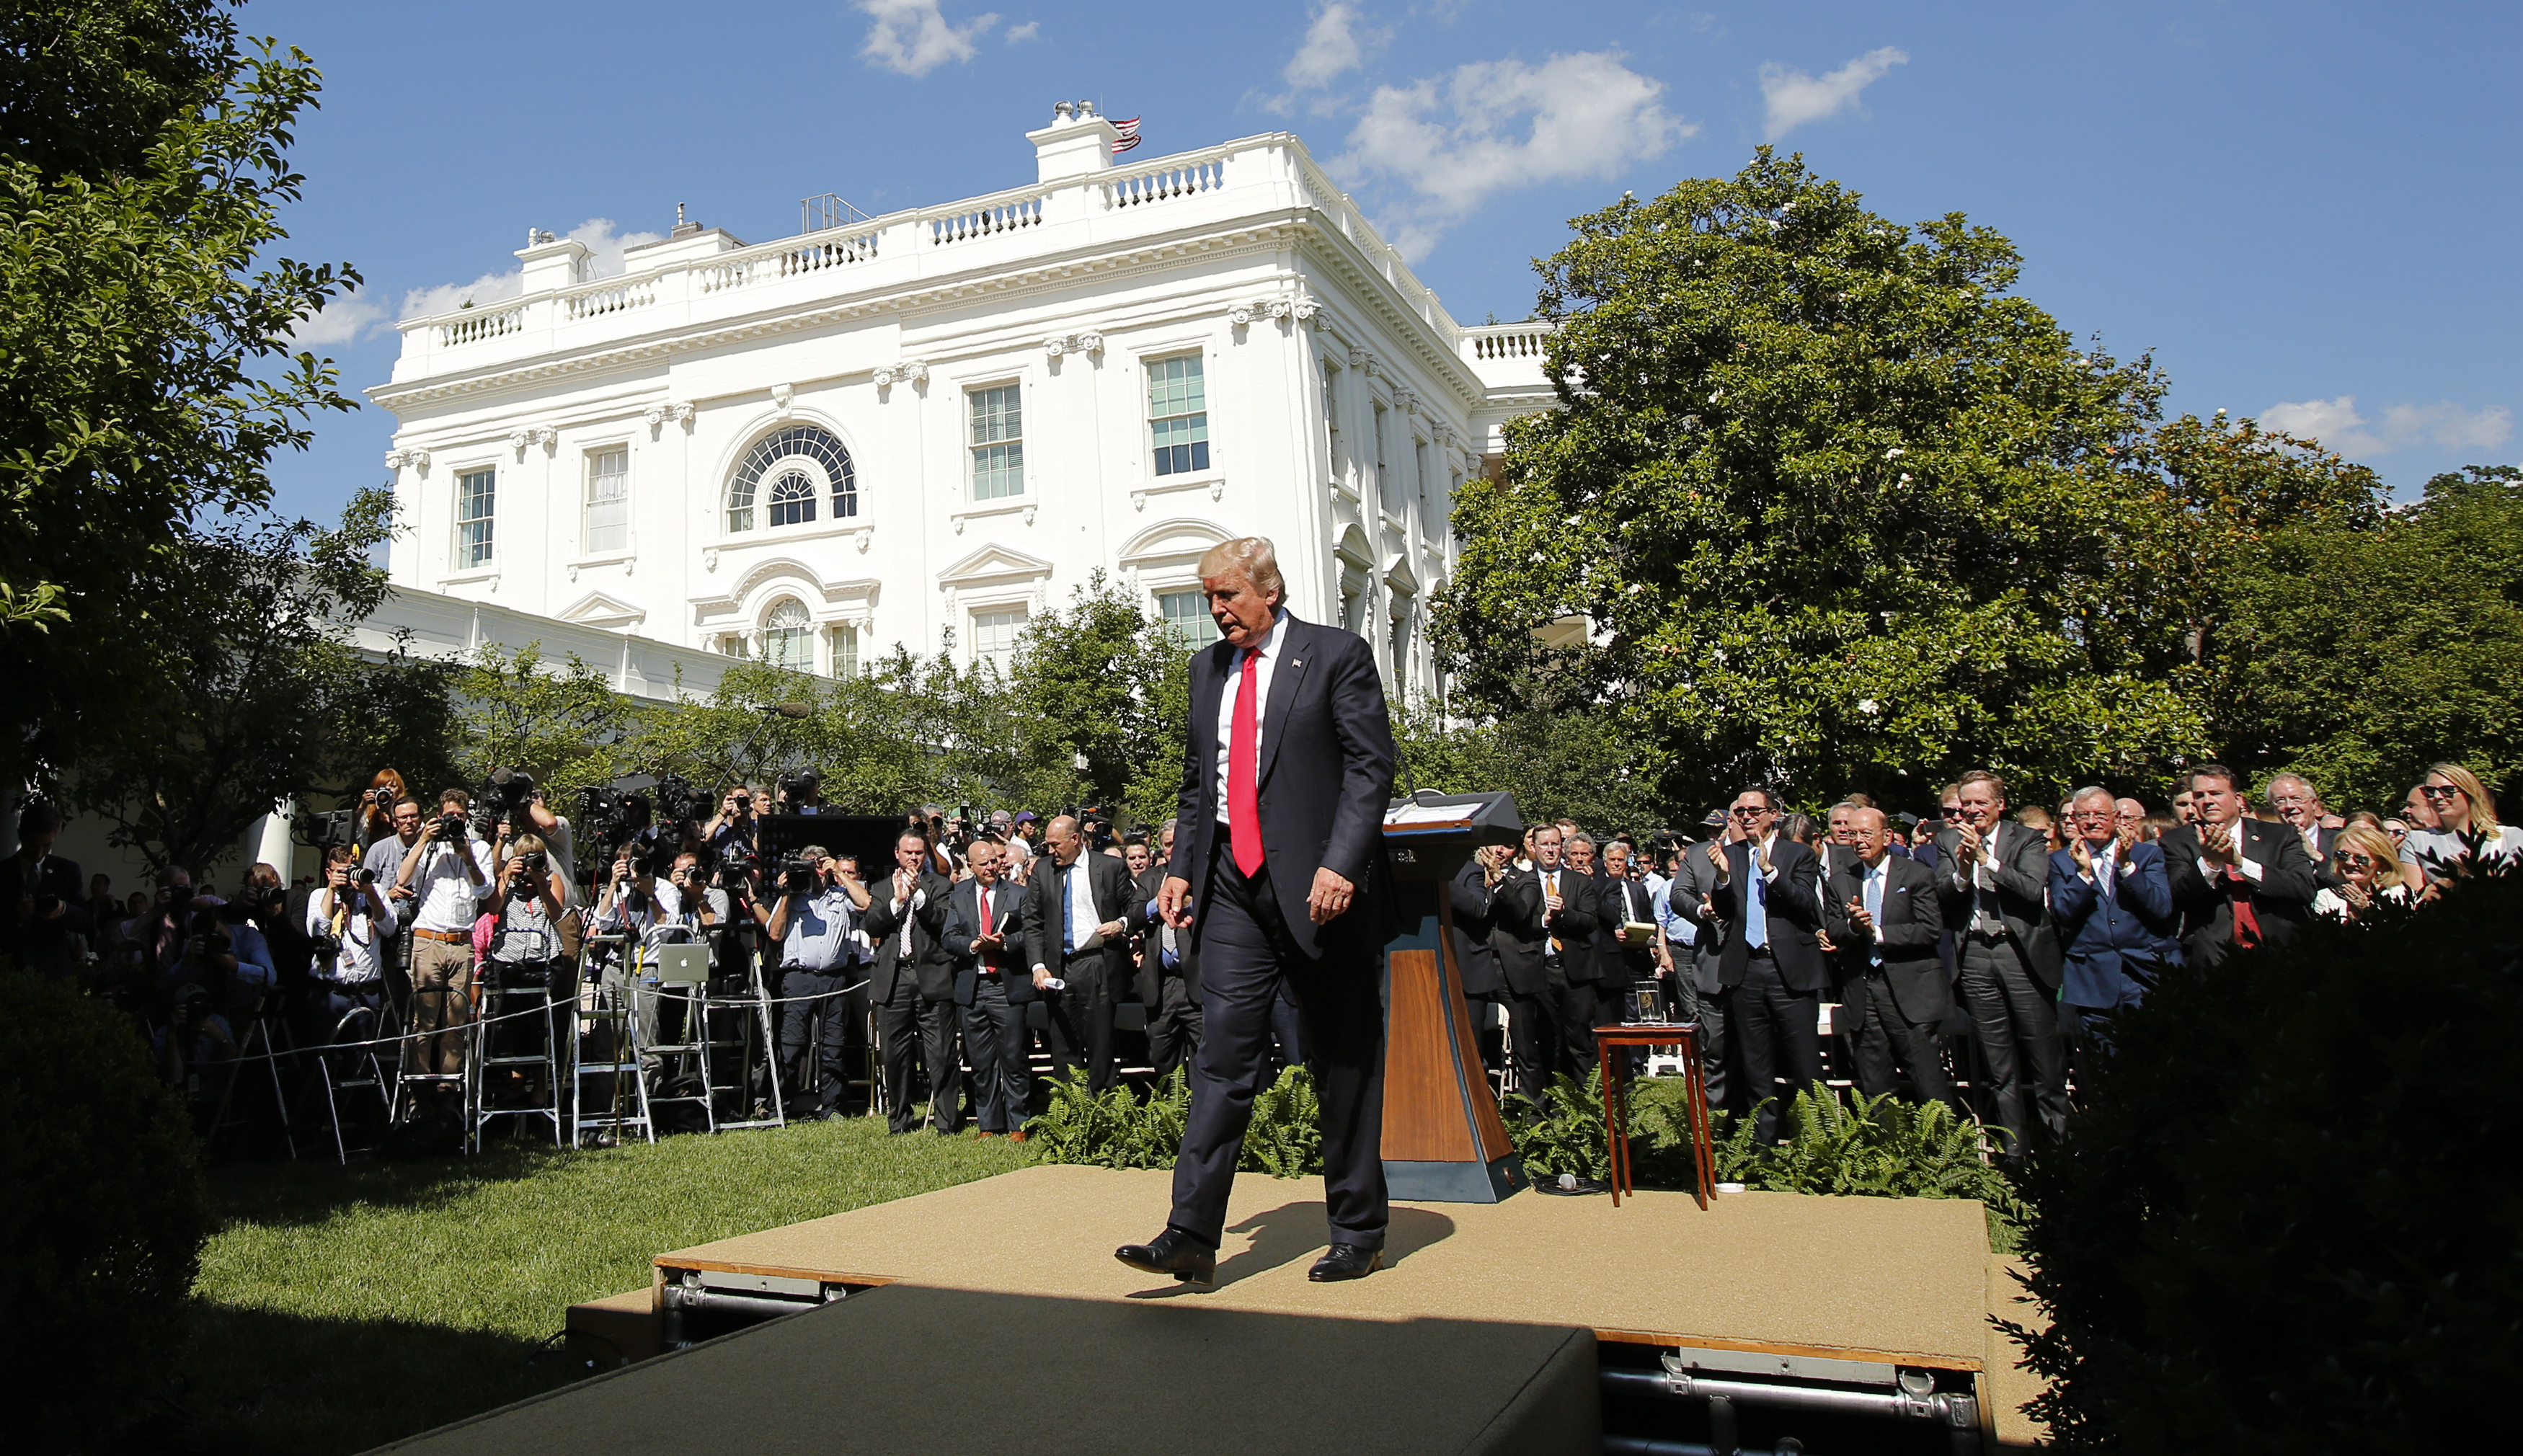 U.S. President Trump departs after announcing his decision to withdraw from Paris Climate Agreement at White House Rose Garden.